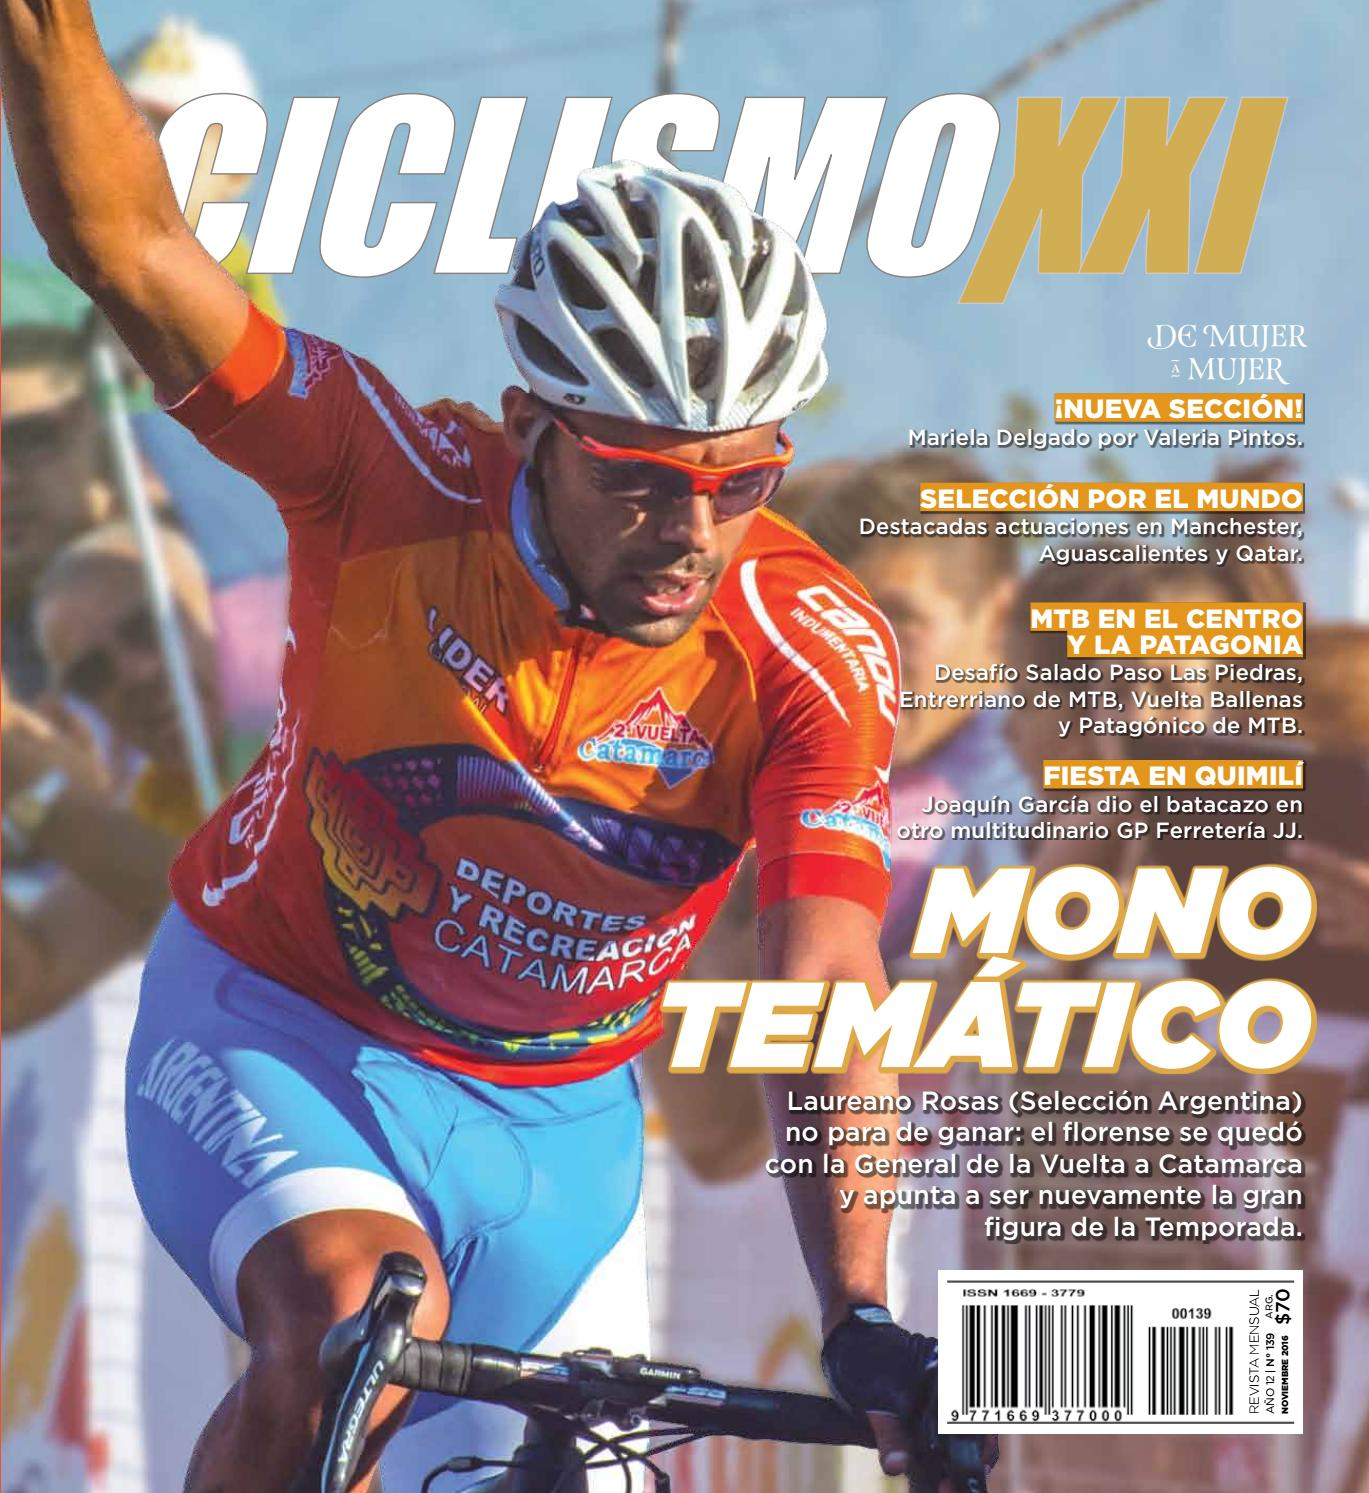 0d87e304aa CiclismoXXI - Revista No. 139 by Ciclismo XXI - issuu